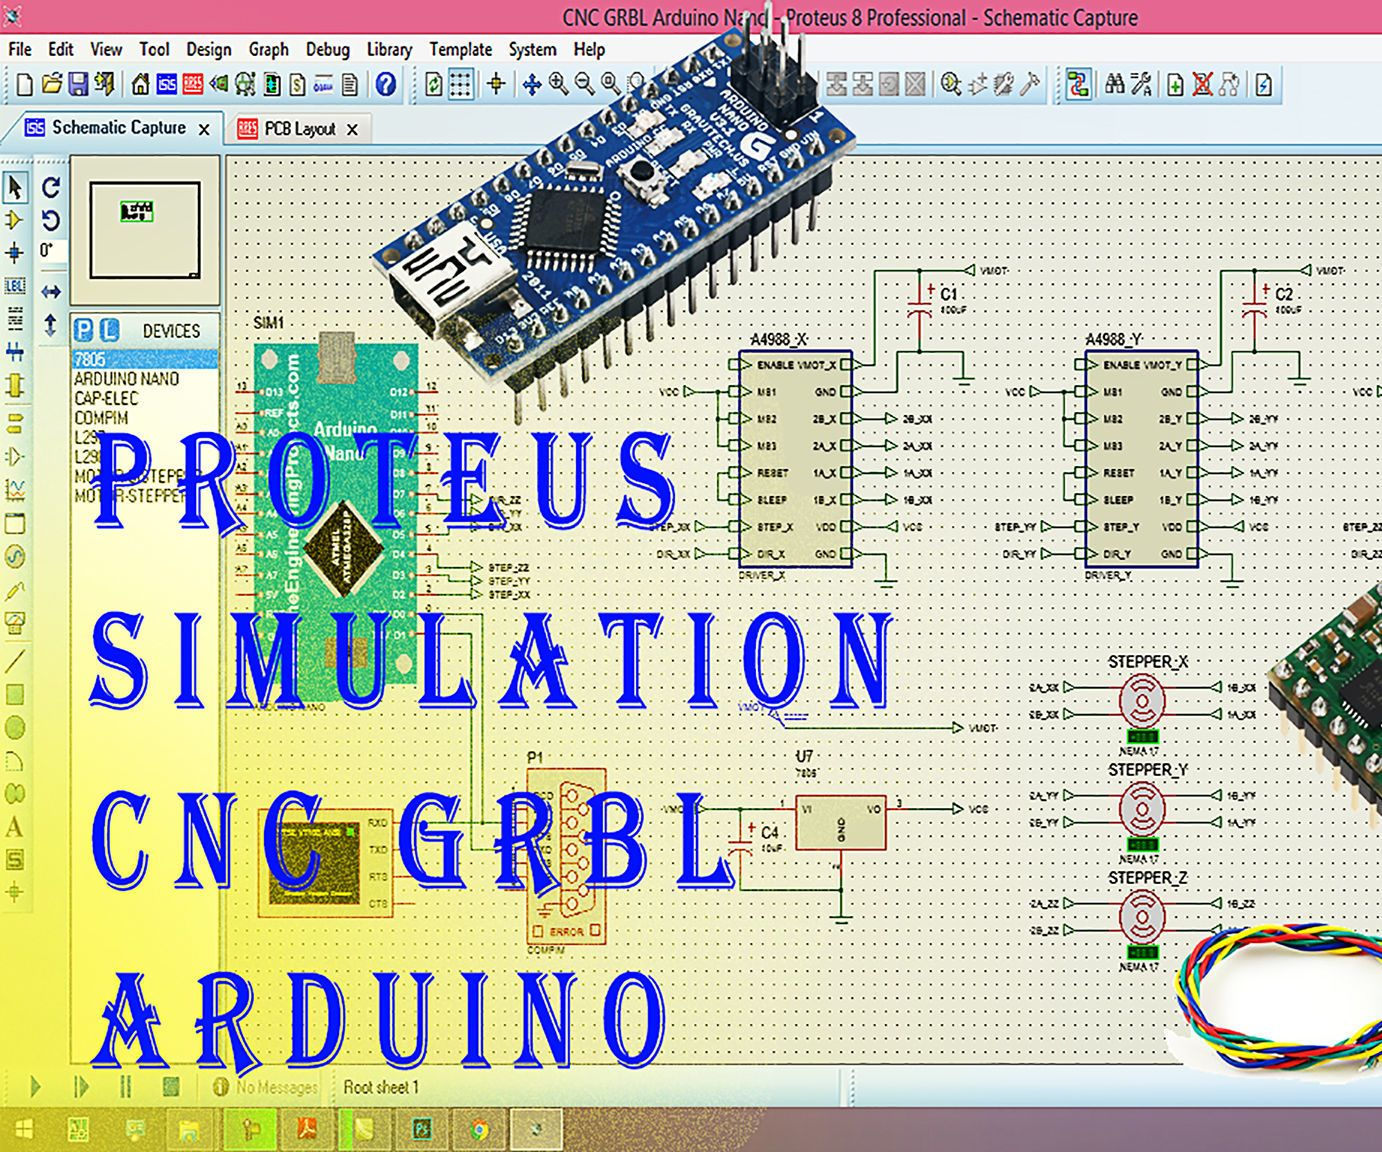 Proteus Simulation Cnc Grbl Arduino Pinterest Java Breadboard Simulator This Is How You Can Use The Program Projects Machine Read It